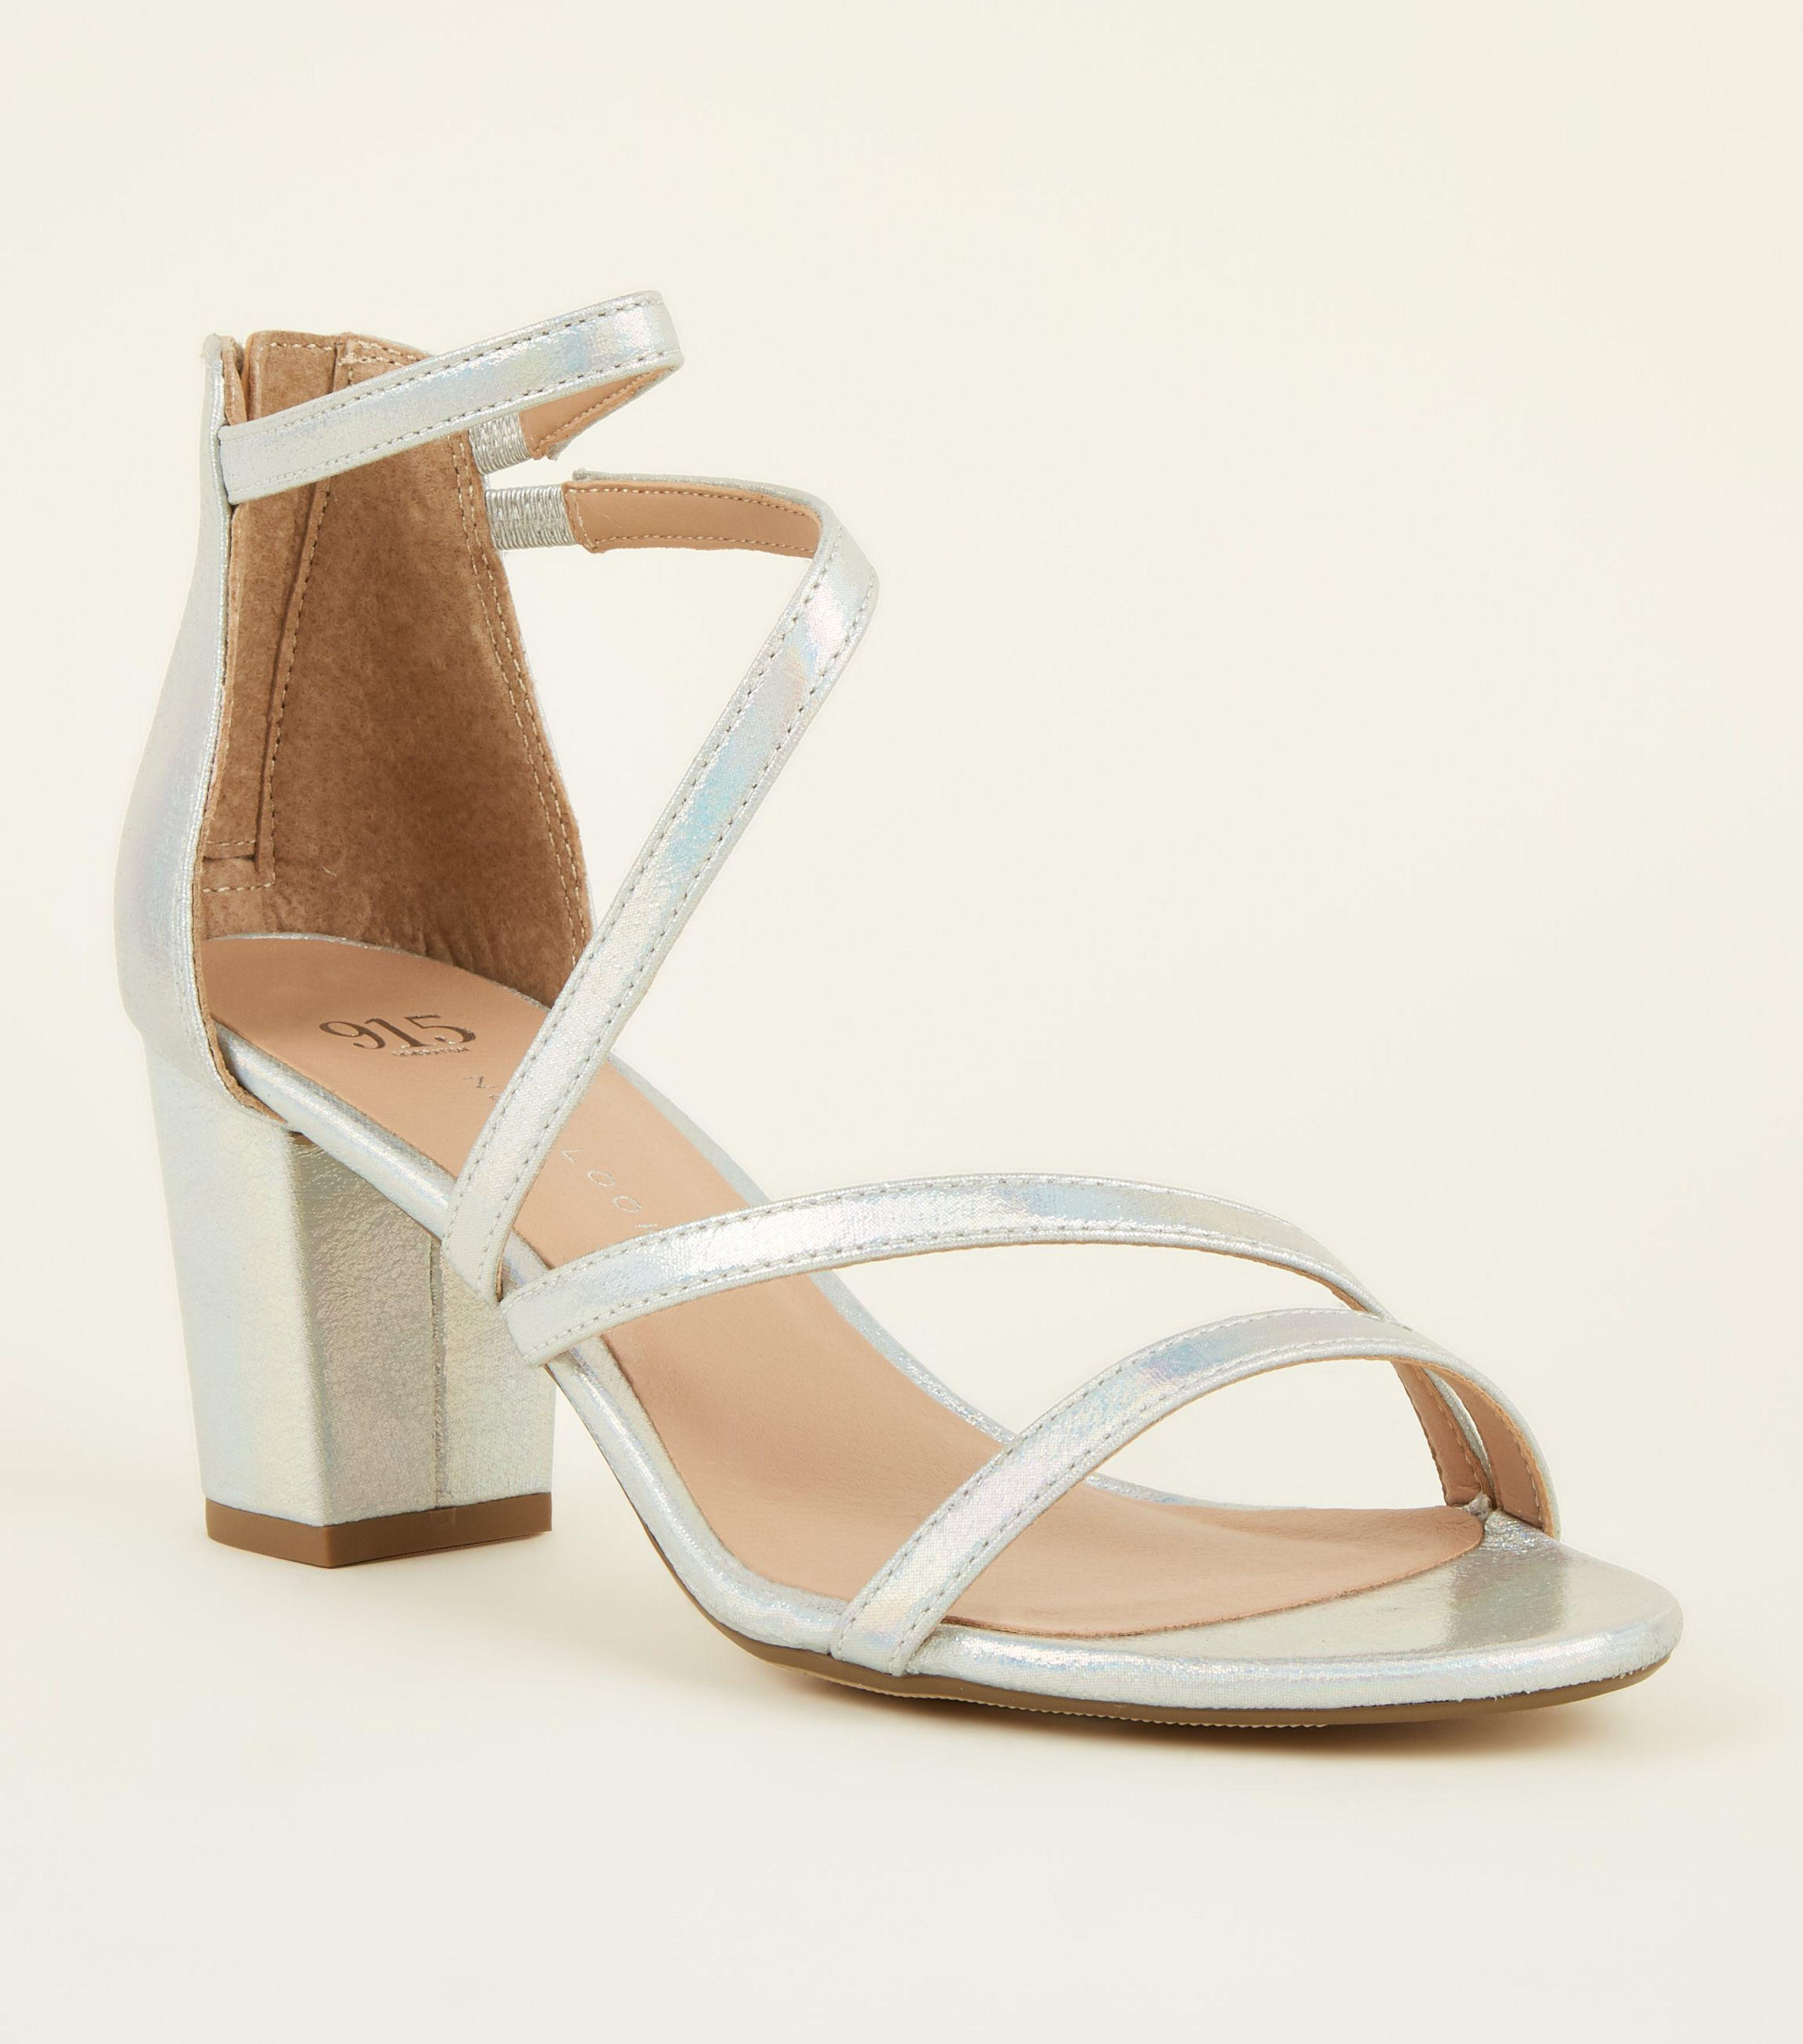 f21727fc1ce New Look Girls Silver Holographic Strappy Block Heeks in Metallic - Lyst